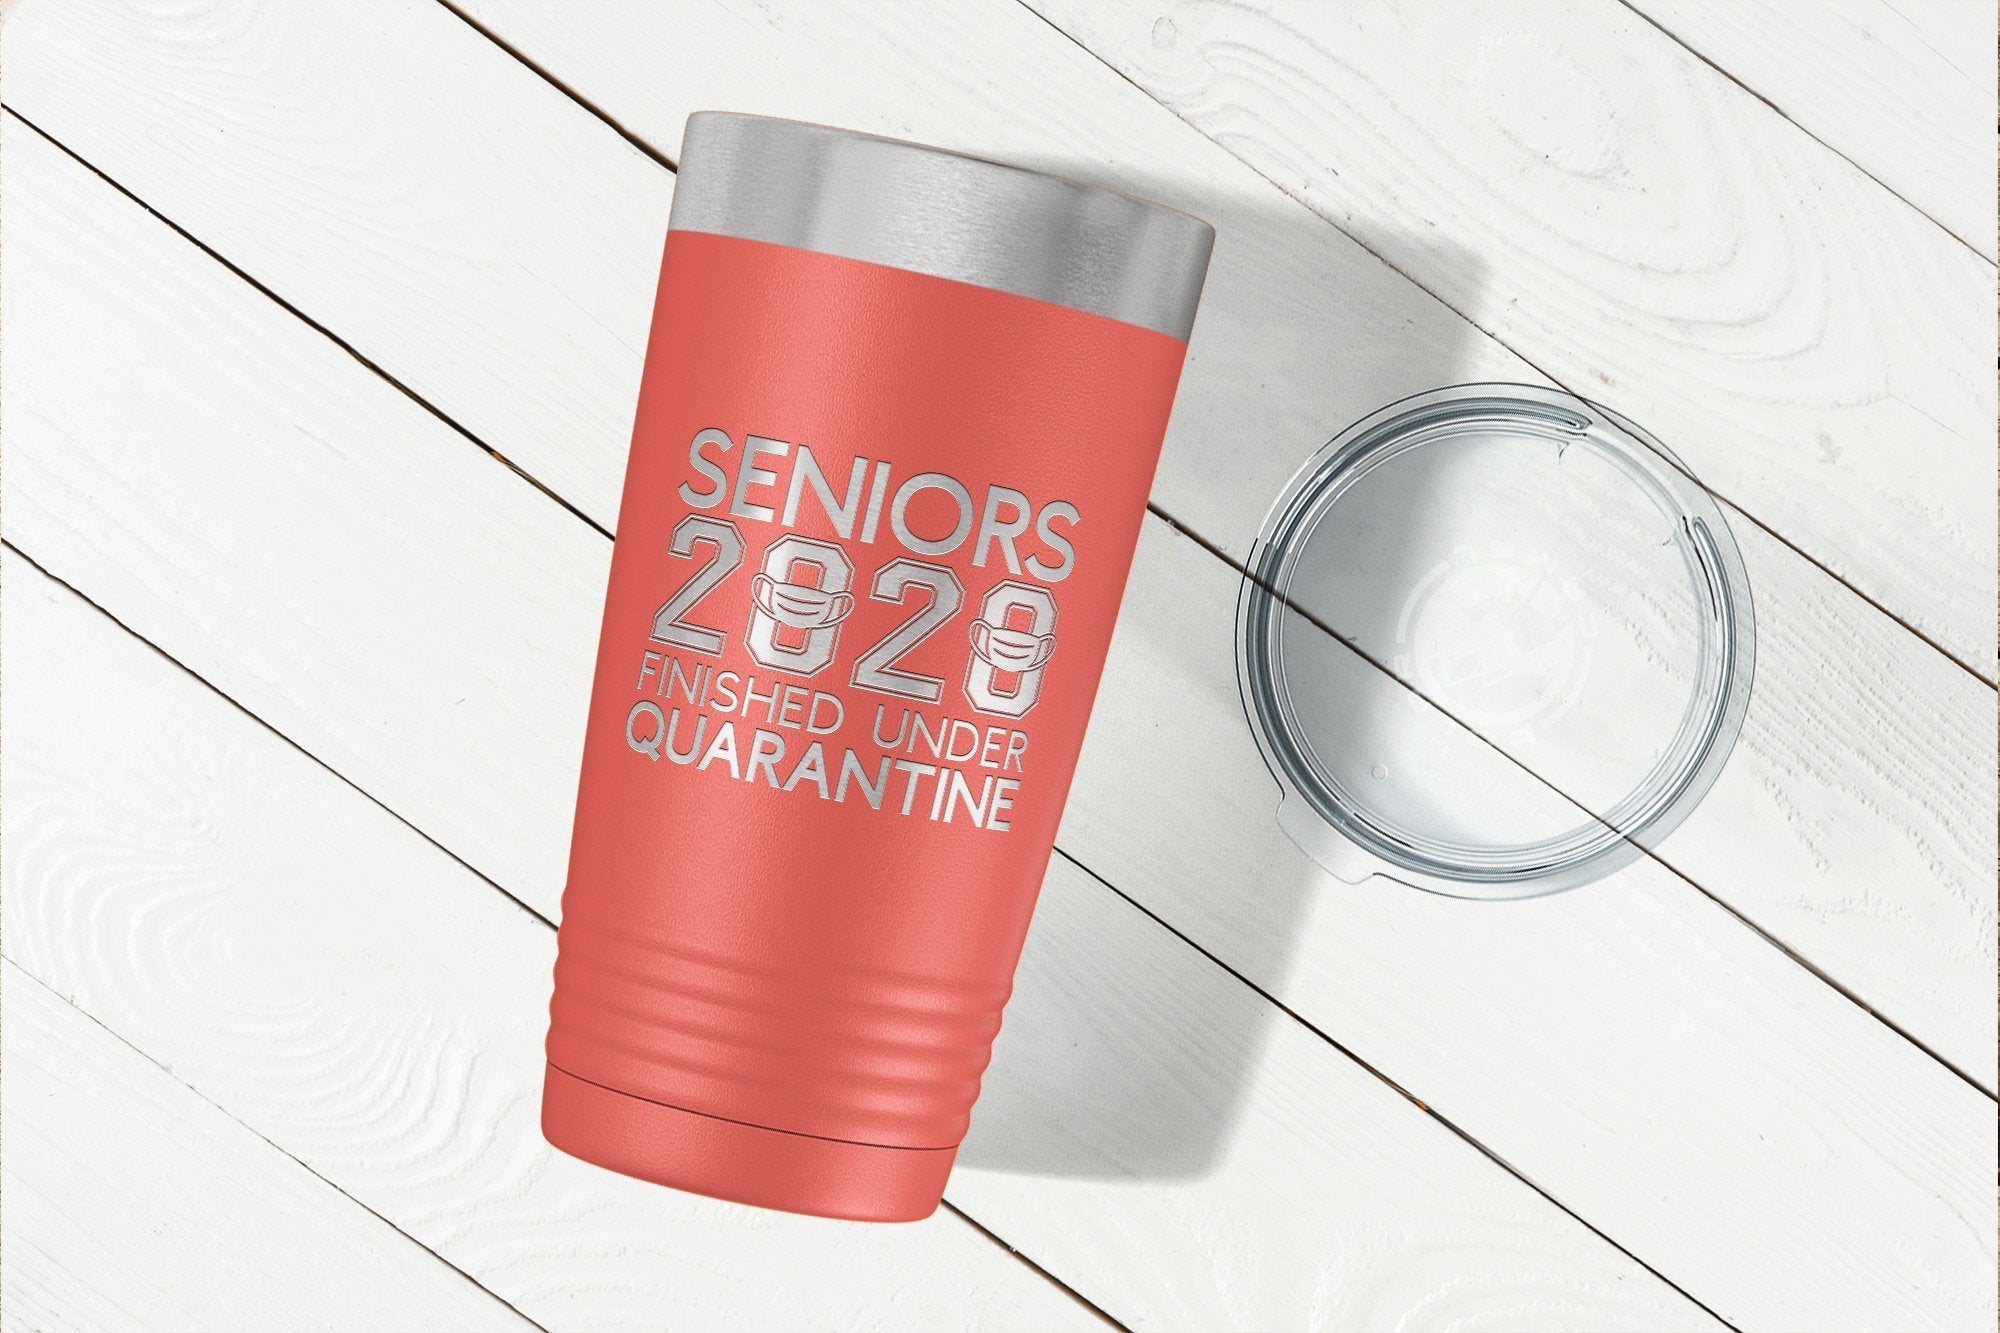 Seniors 2020 Tumbler - Finished Under Quarantine-Tumblers + Water Bottles-Maddie & Co.